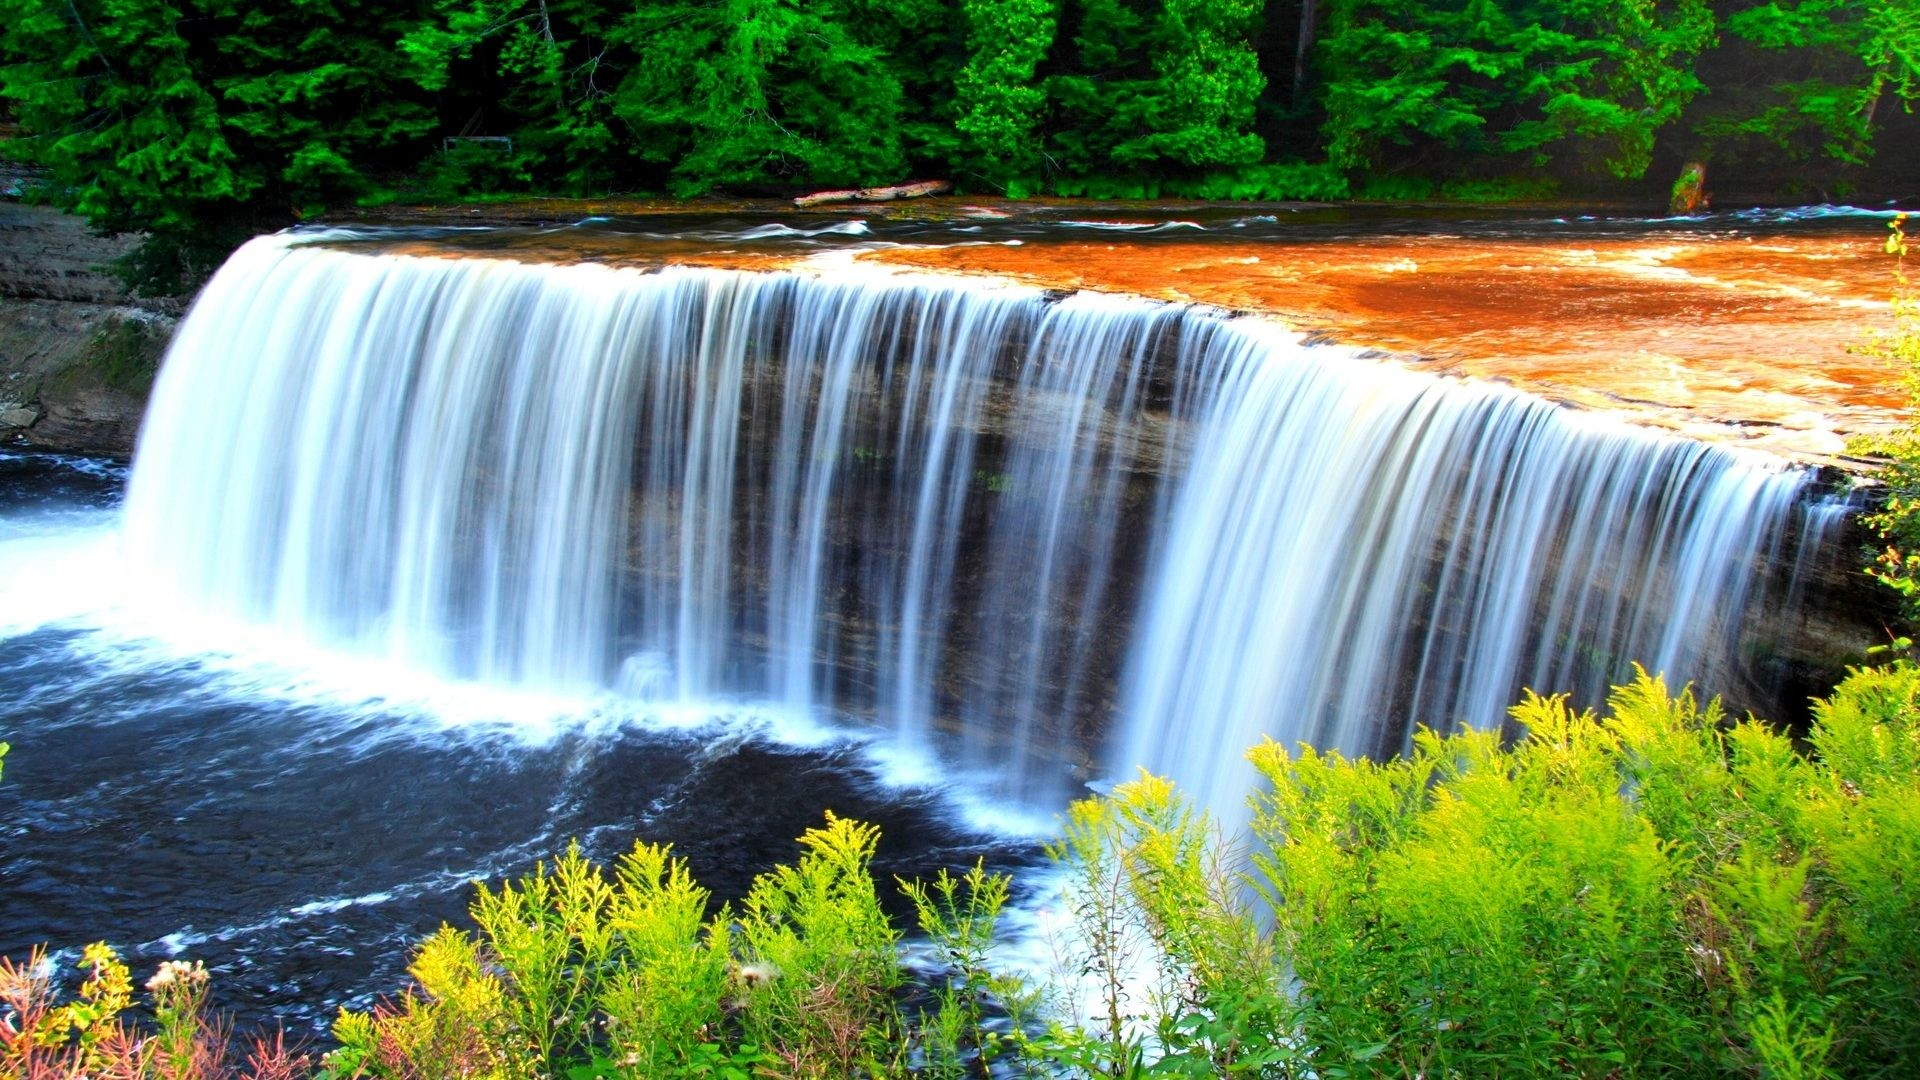 Live Waterfalls Wallpapers With Sound (36+ Images